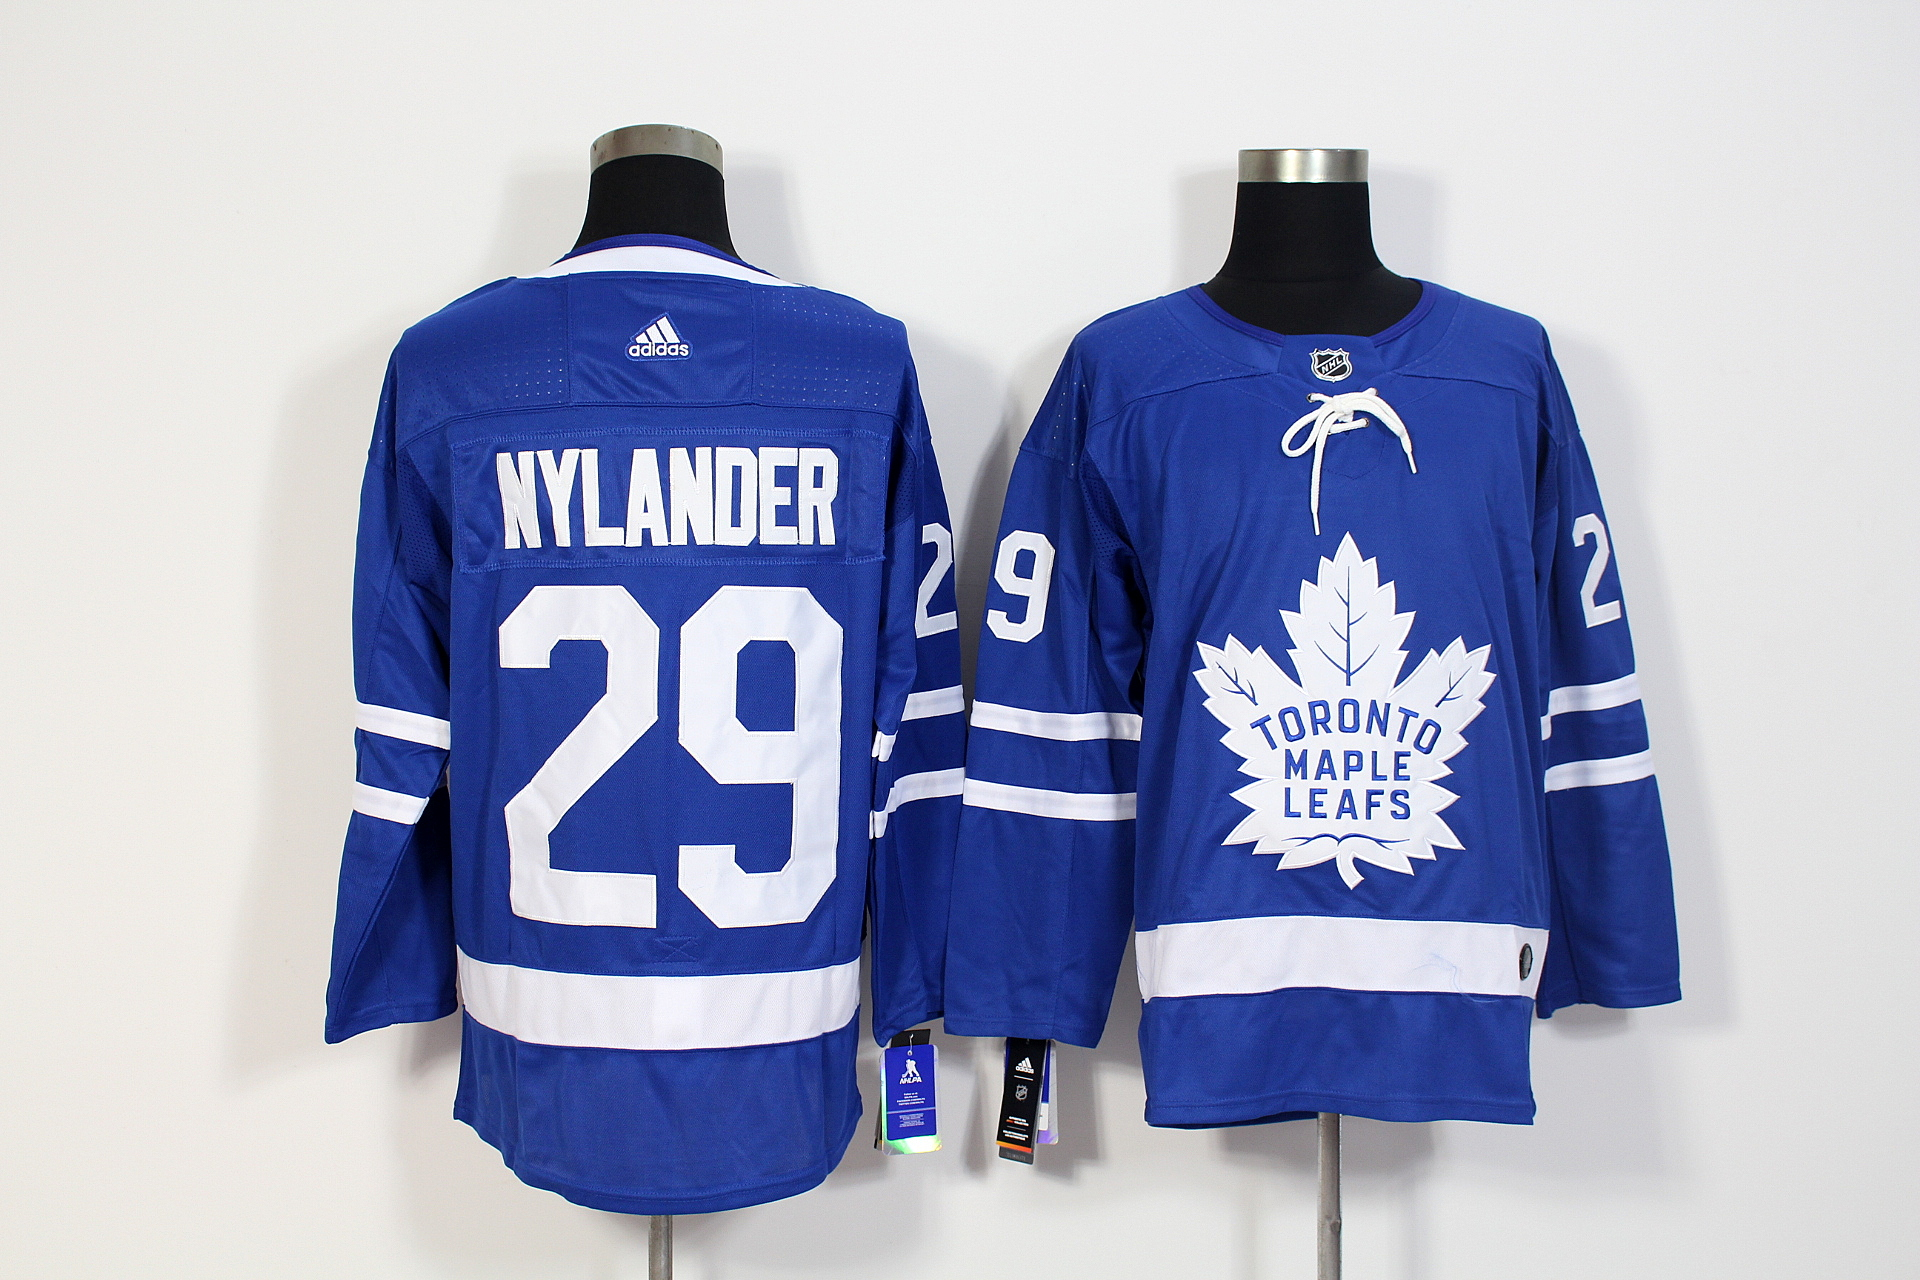 Men's Adidas Toronto Maple Leafs #29 William Nylander Blue Stitched NHL Jersey